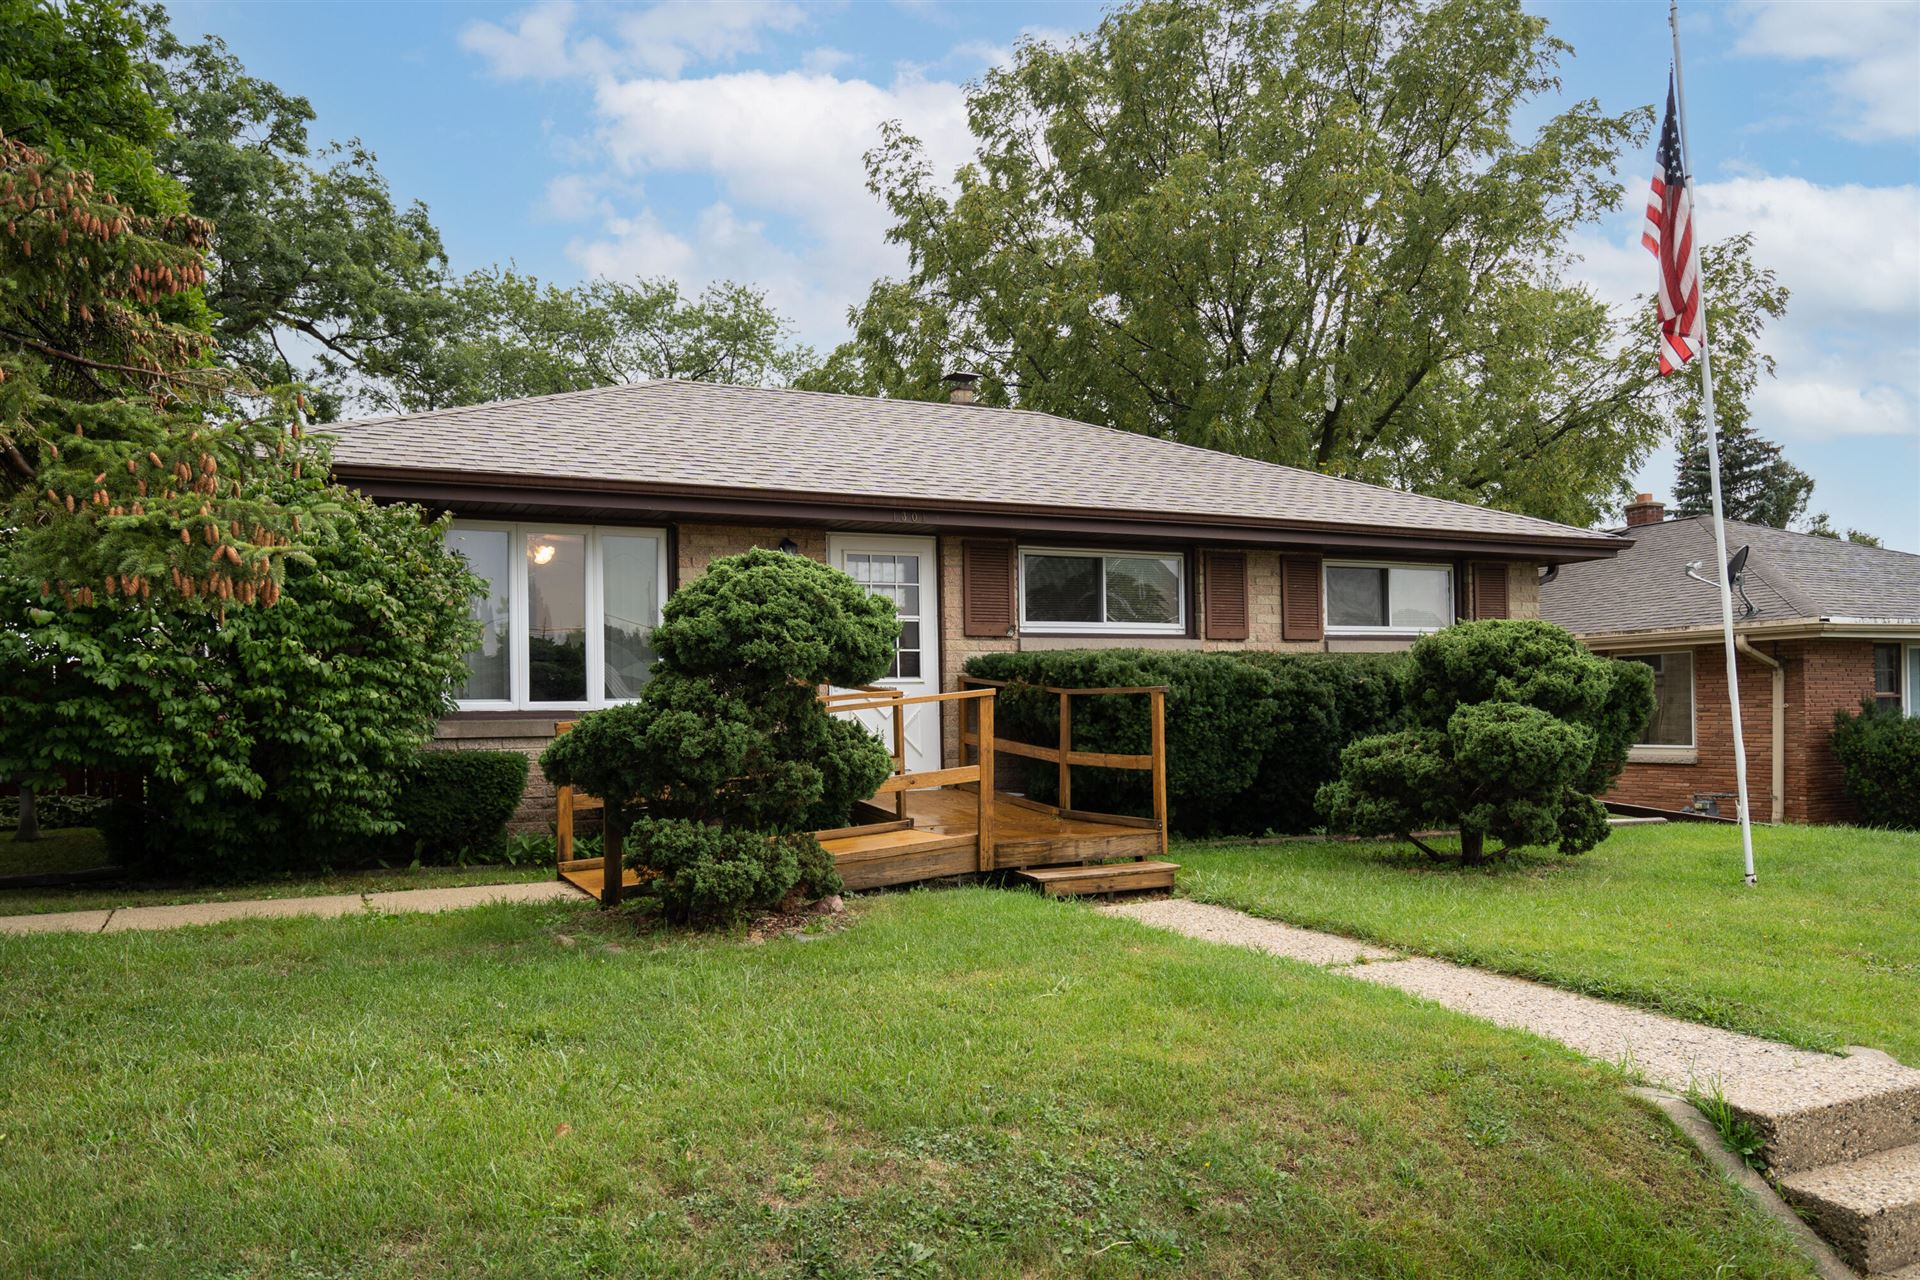 1301 Manitowoc Ave, South Milwaukee, WI 53172 - MLS#: 1763428